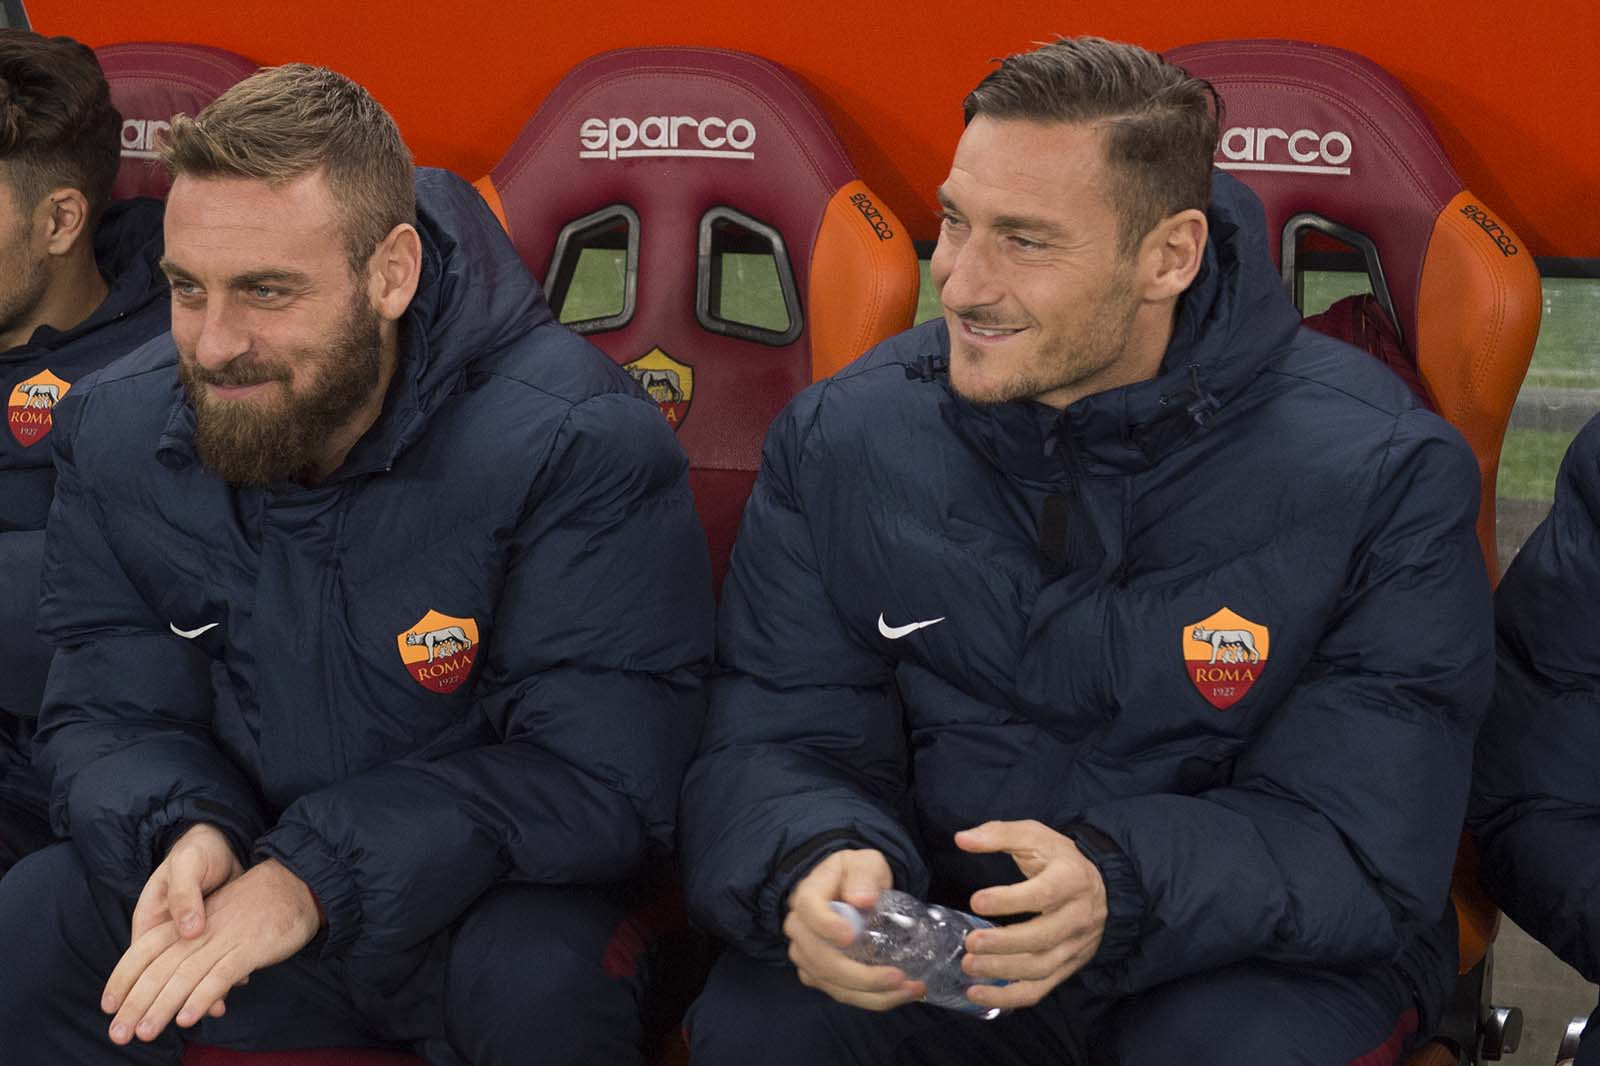 http://res.cloudinary.com/as-roma-turbine-production/image/upload/v1/asroma-uat/xggqonbspktovxekf0xe